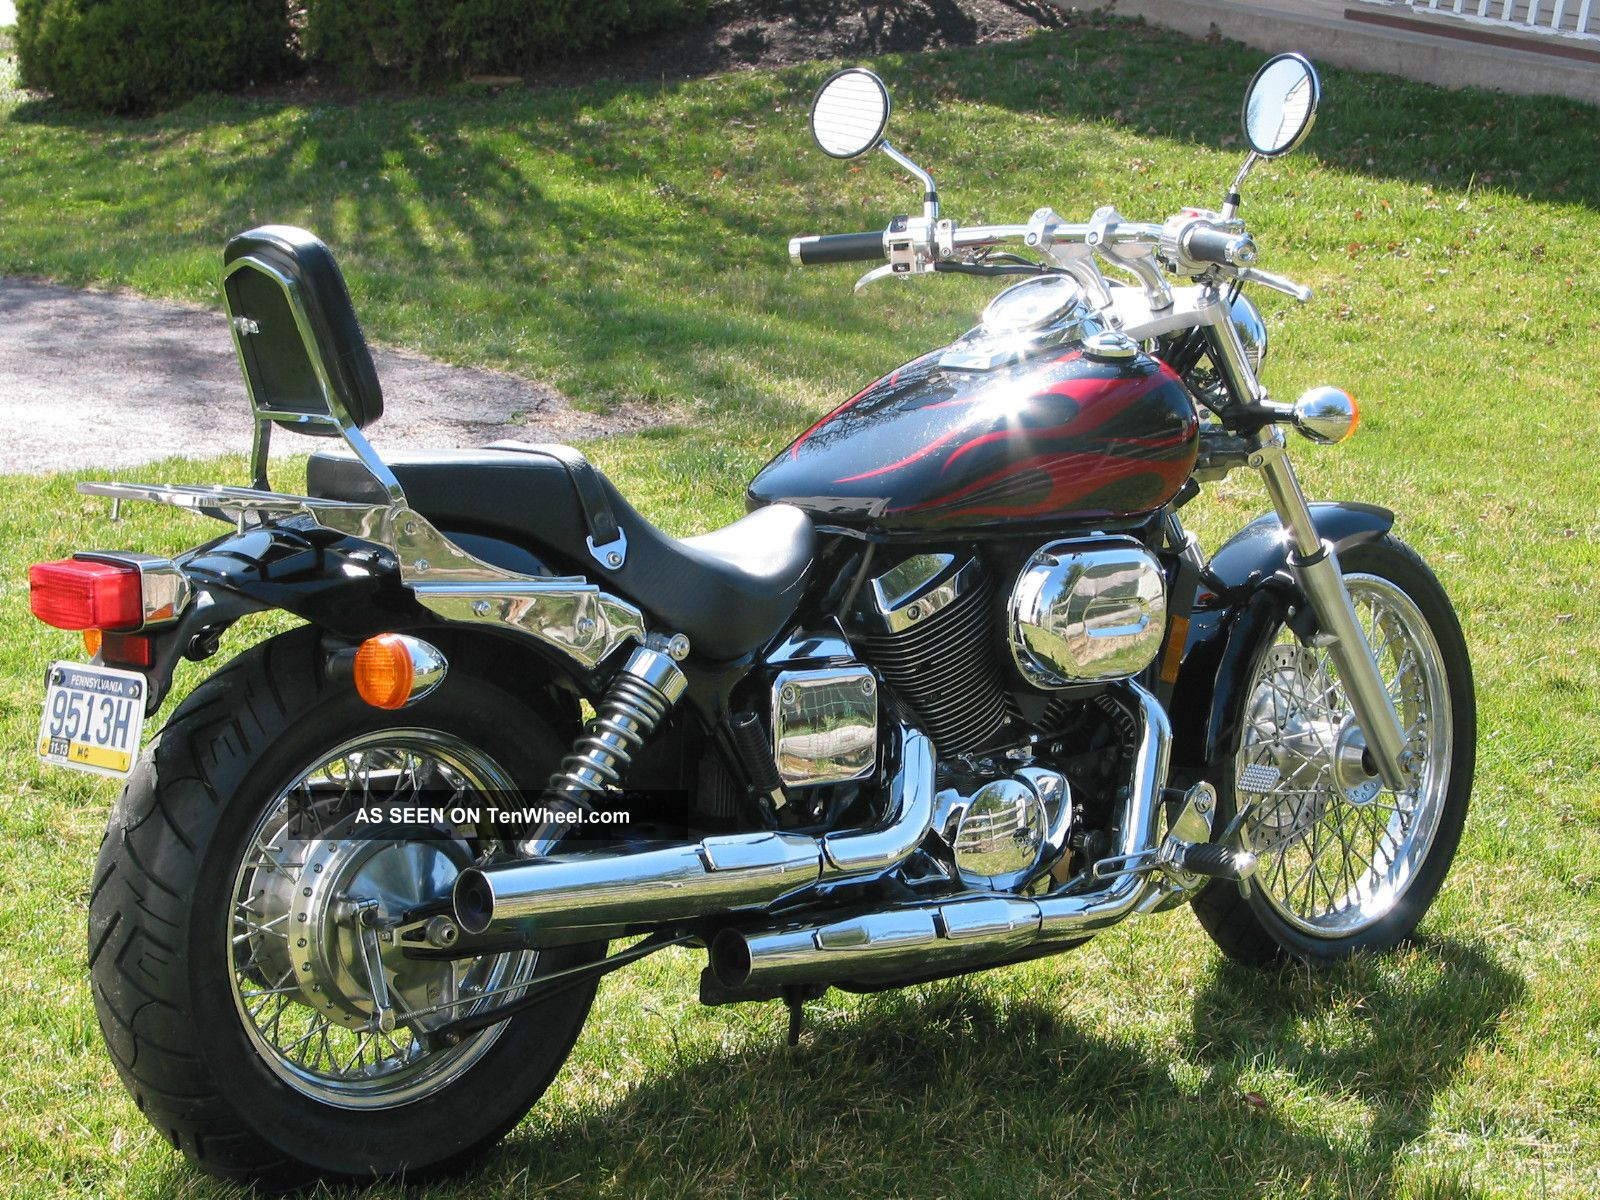 2013 honda shadow spirit 750 pics specs and information. Black Bedroom Furniture Sets. Home Design Ideas